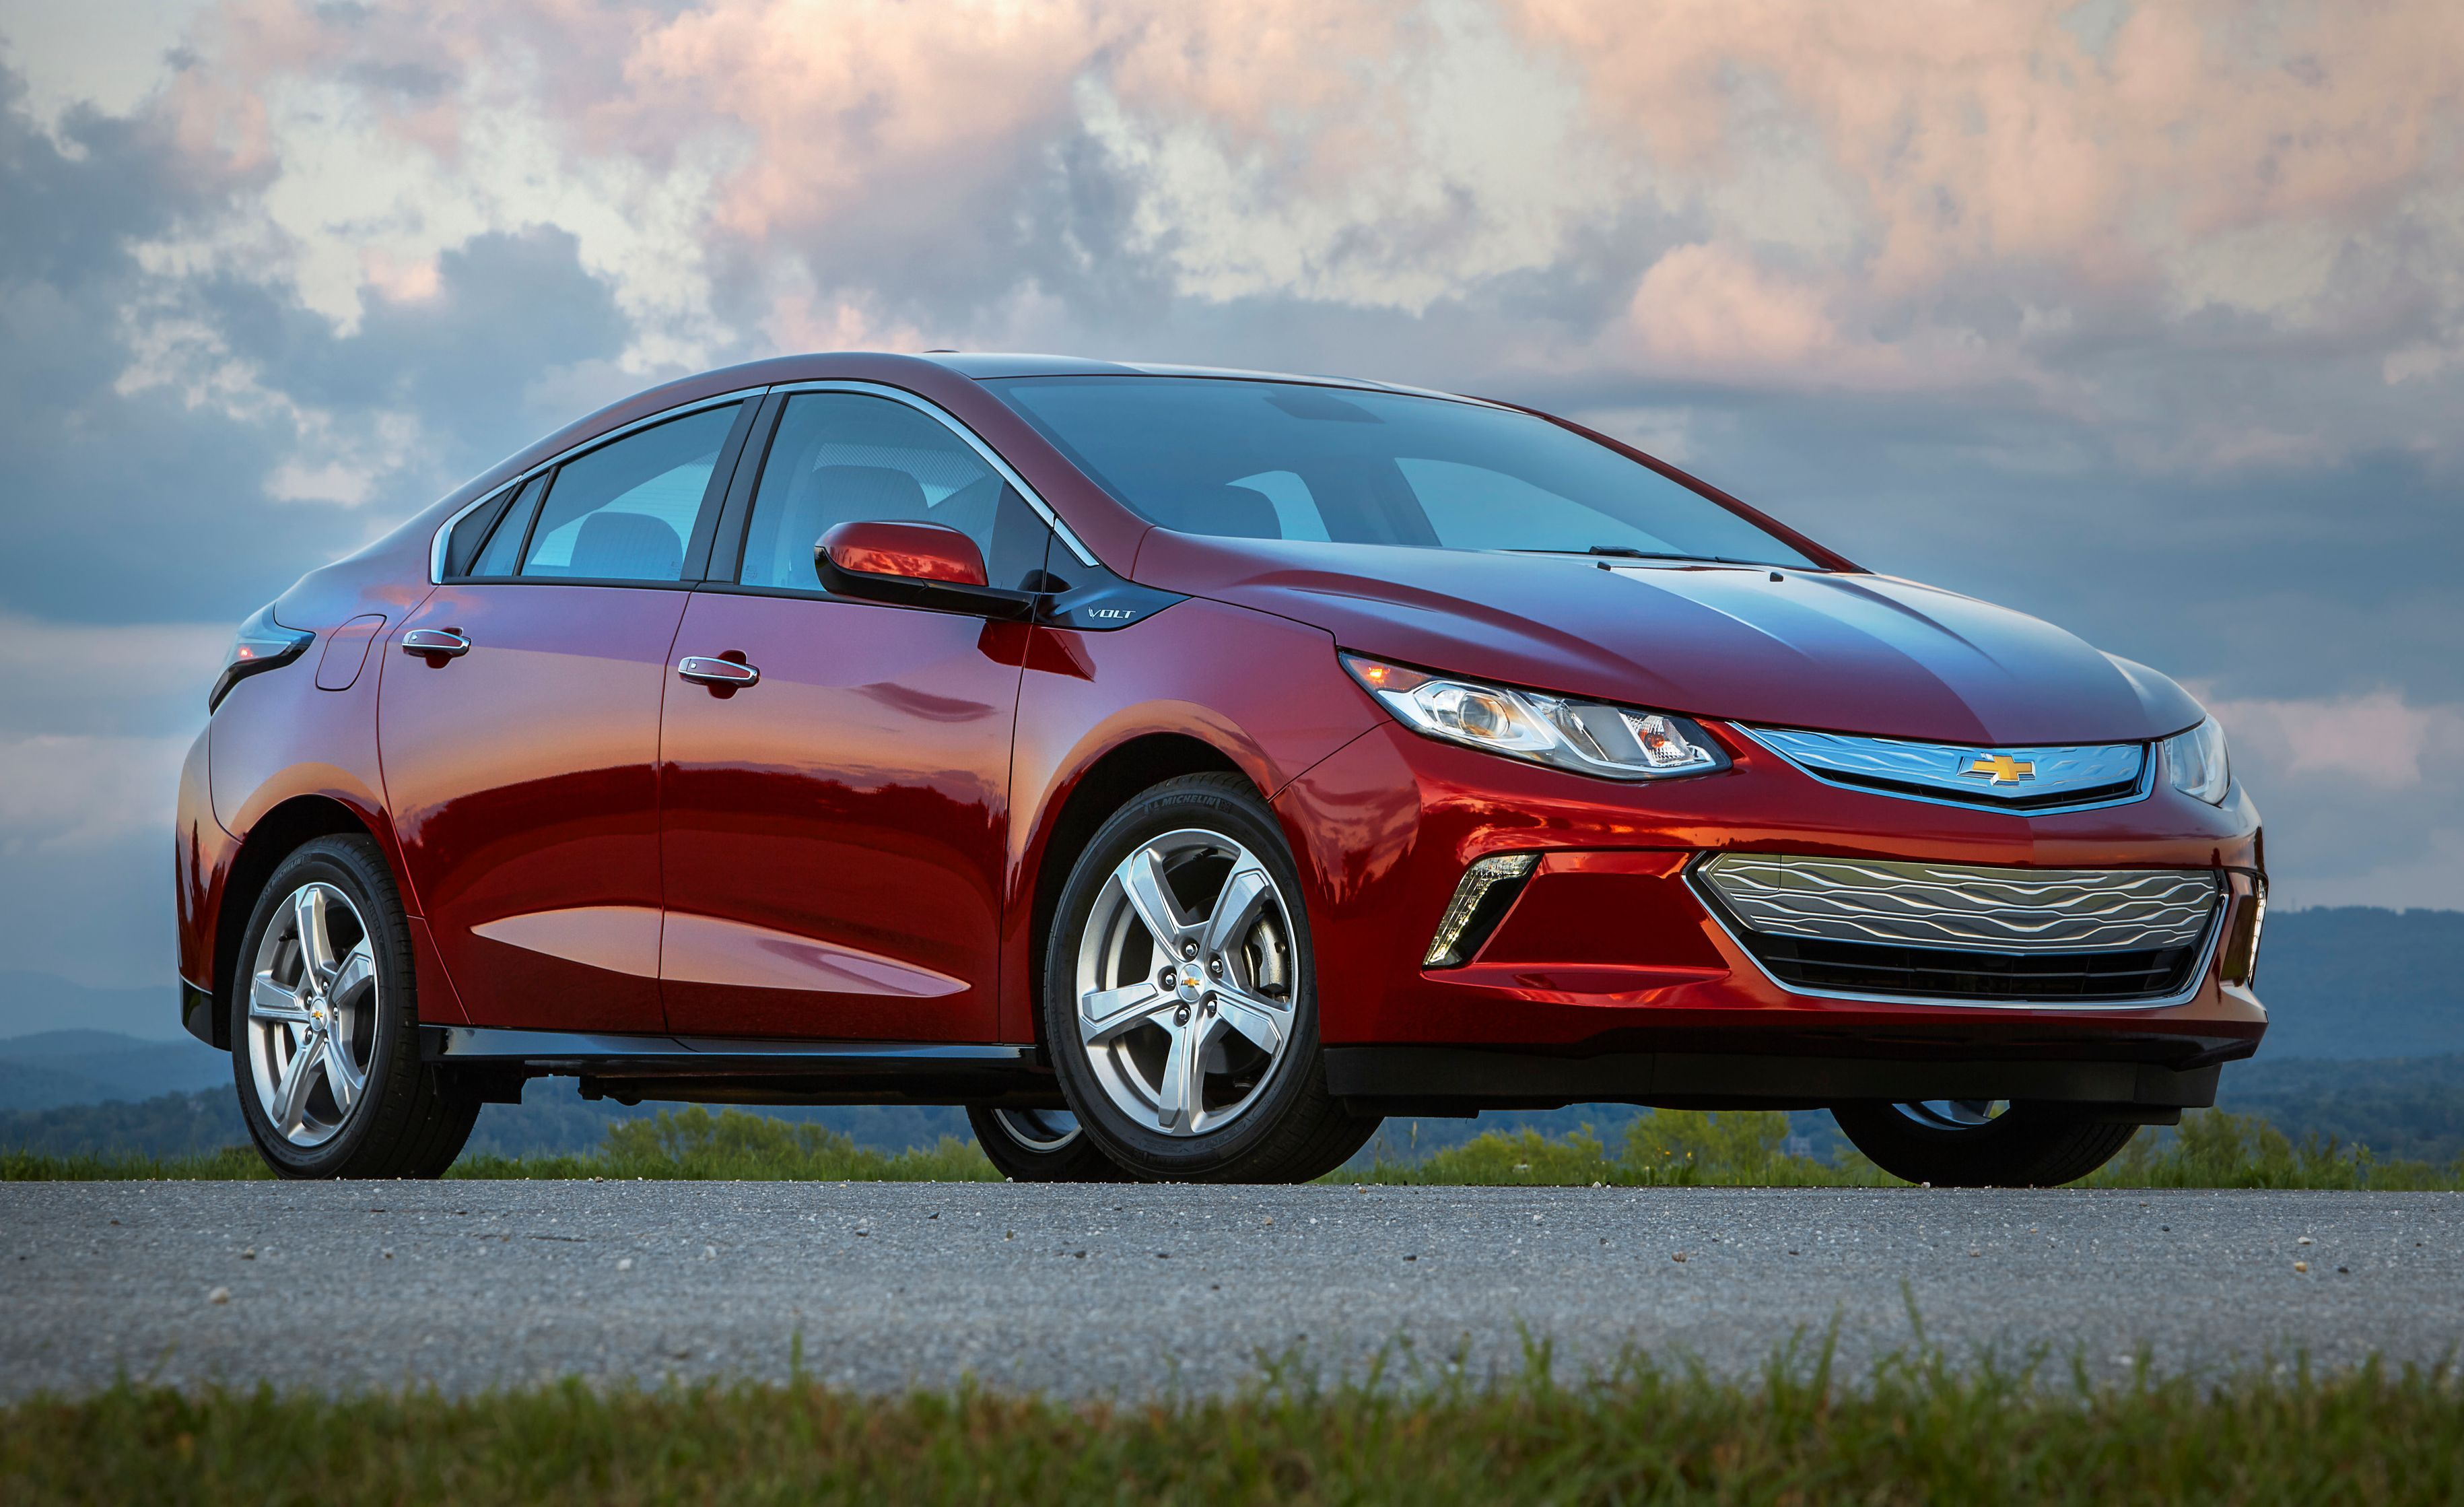 Discontinued Cars Chevrolet Volt In 2020 Chevrolet Volt Best Hybrid Cars Chevy Volt